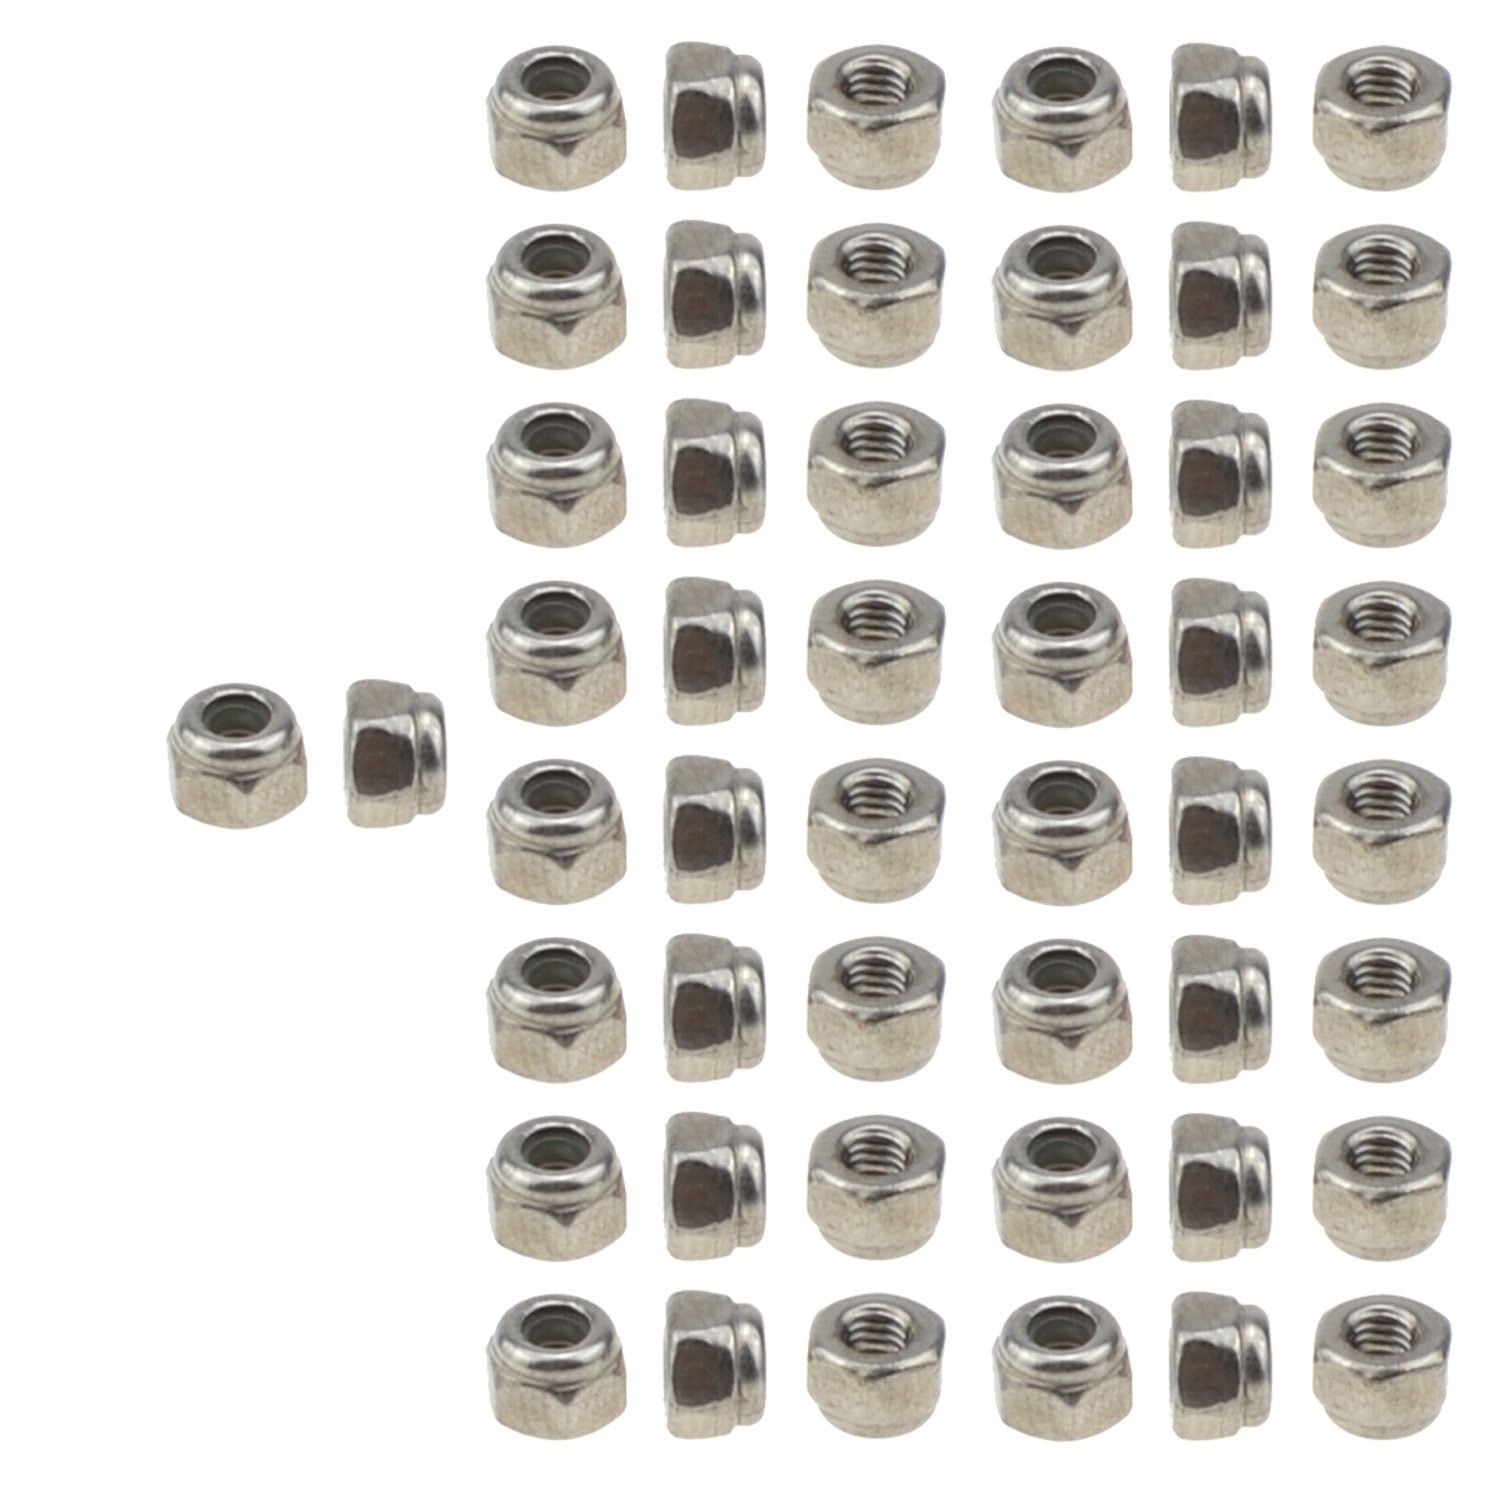 304 Stainless Steel Hex Nut Nylock Locknuts A2-70 5, M8-Left Hand 1.25